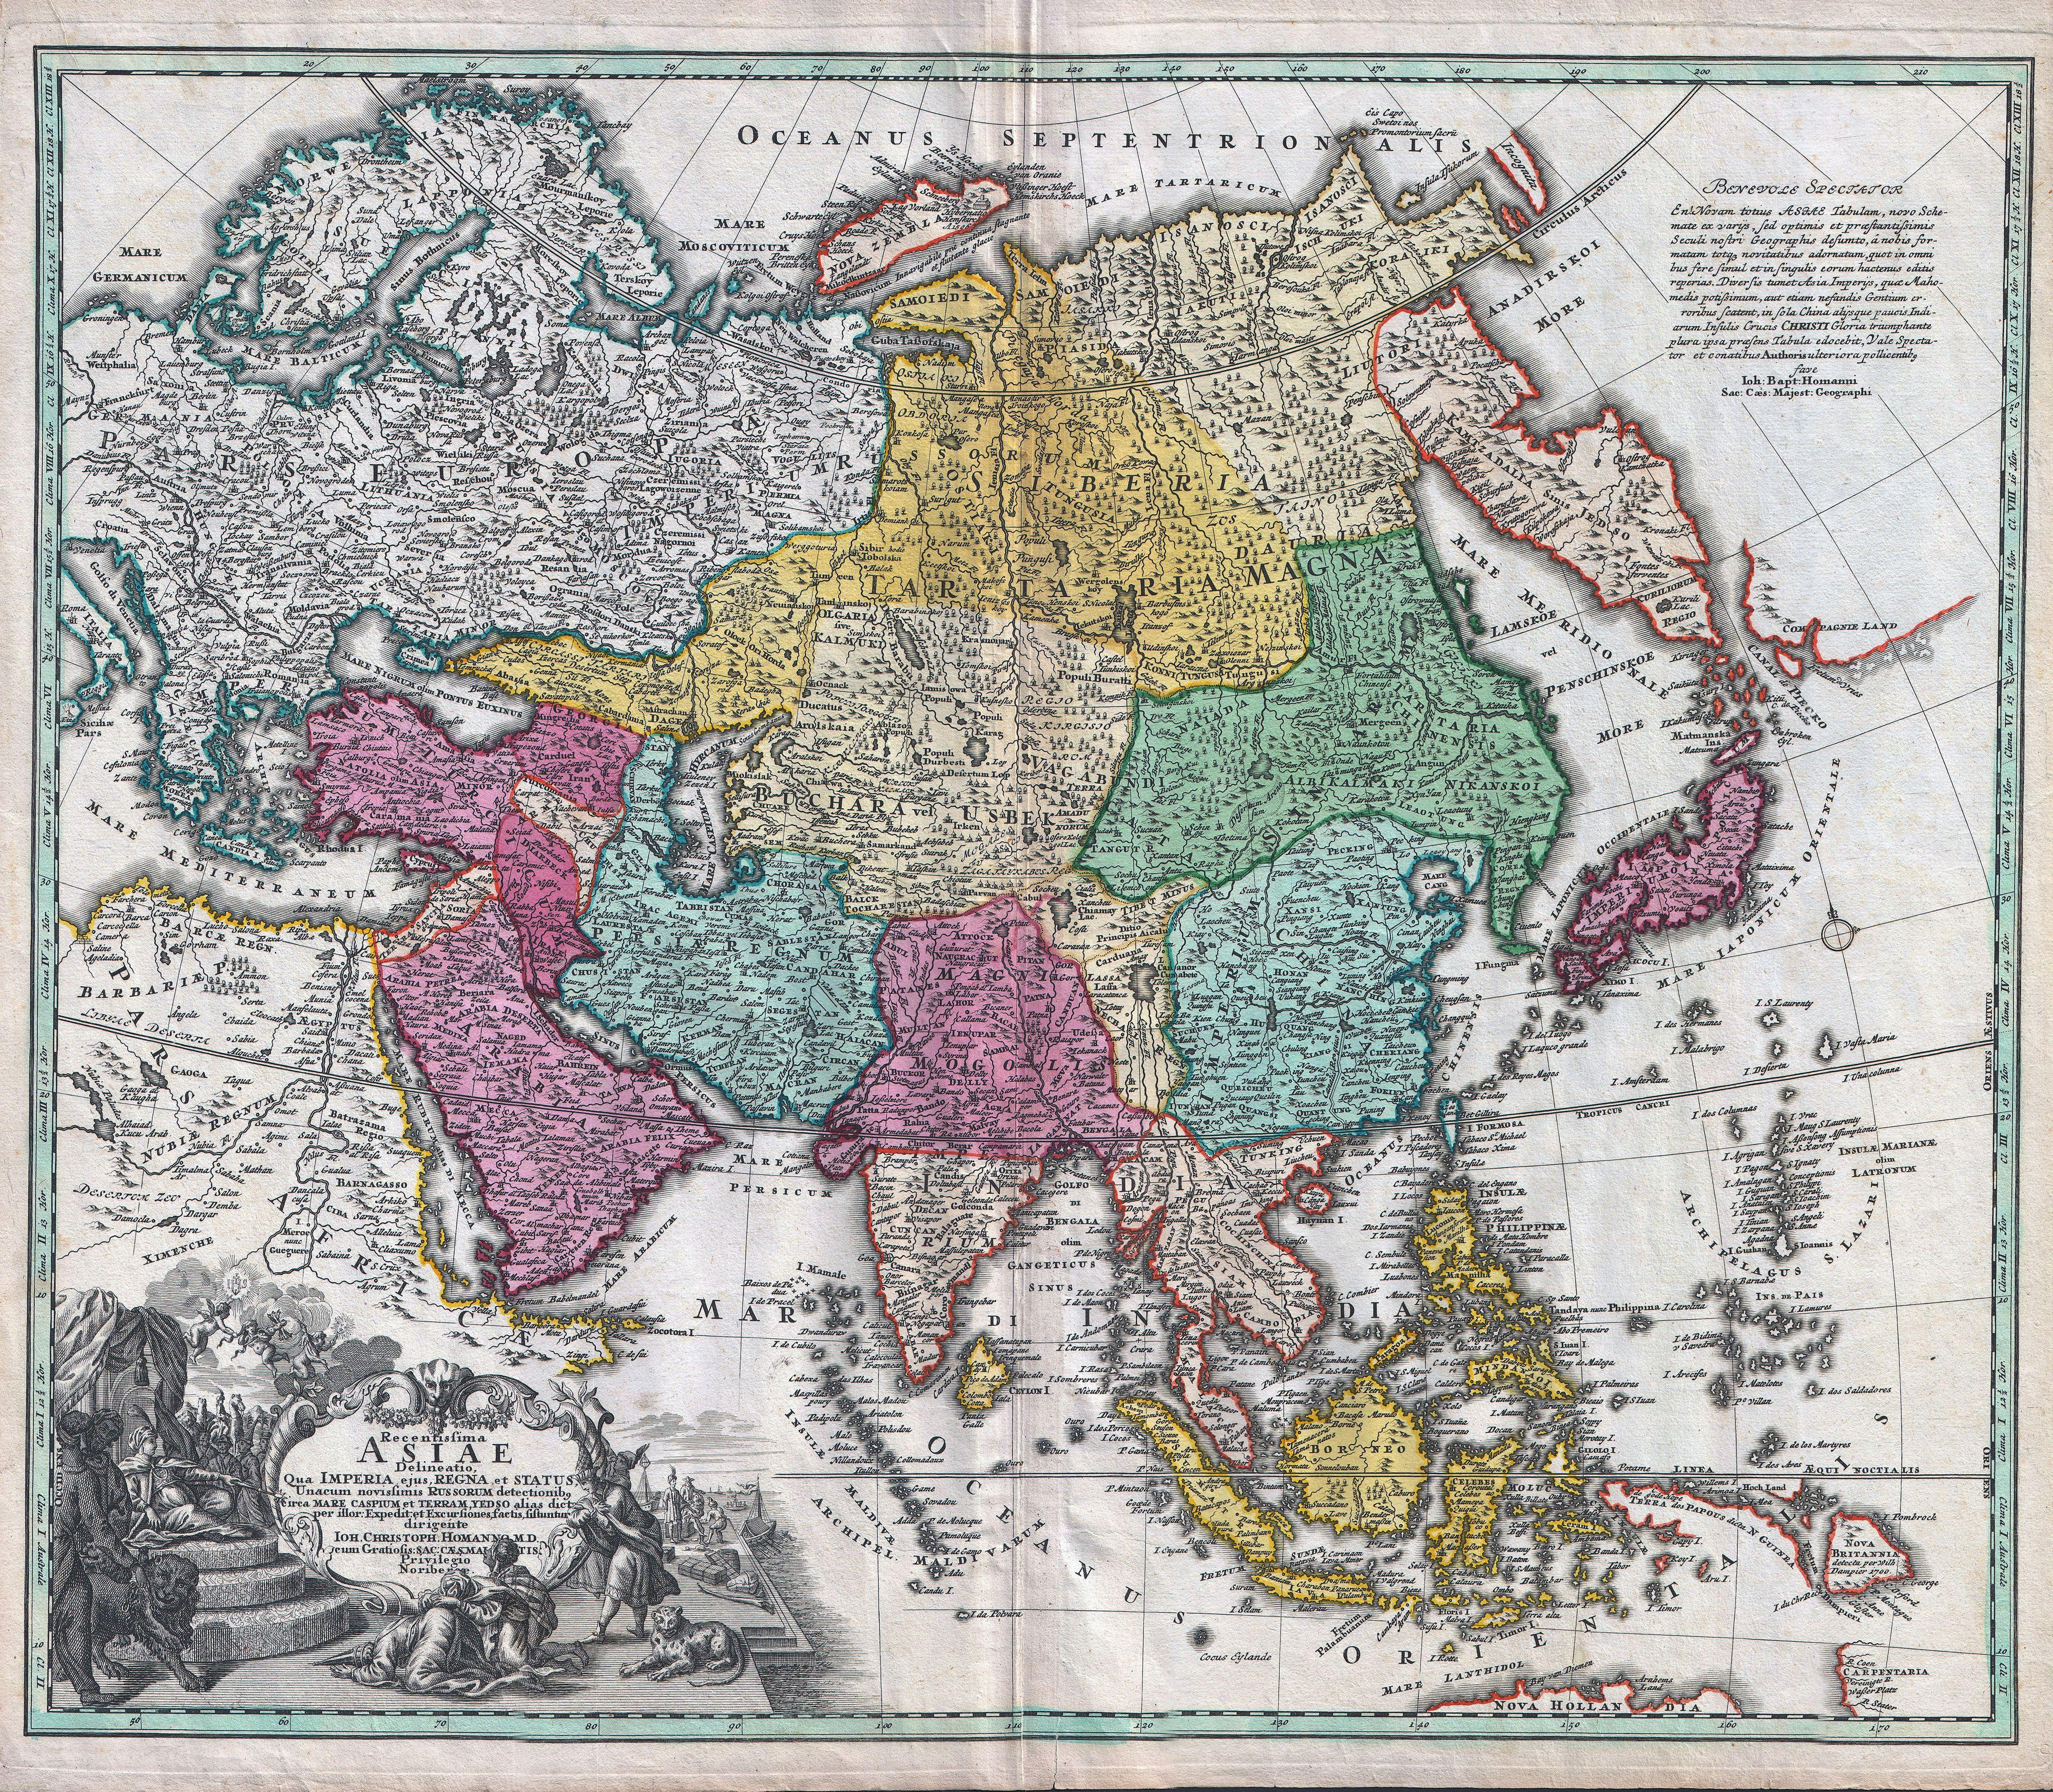 http://en.academic.ru/pictures/enwiki/49/1730_C._Homann_Map_of_Asia_-_Geographicus_-_Asiae-homann-1730.jpg